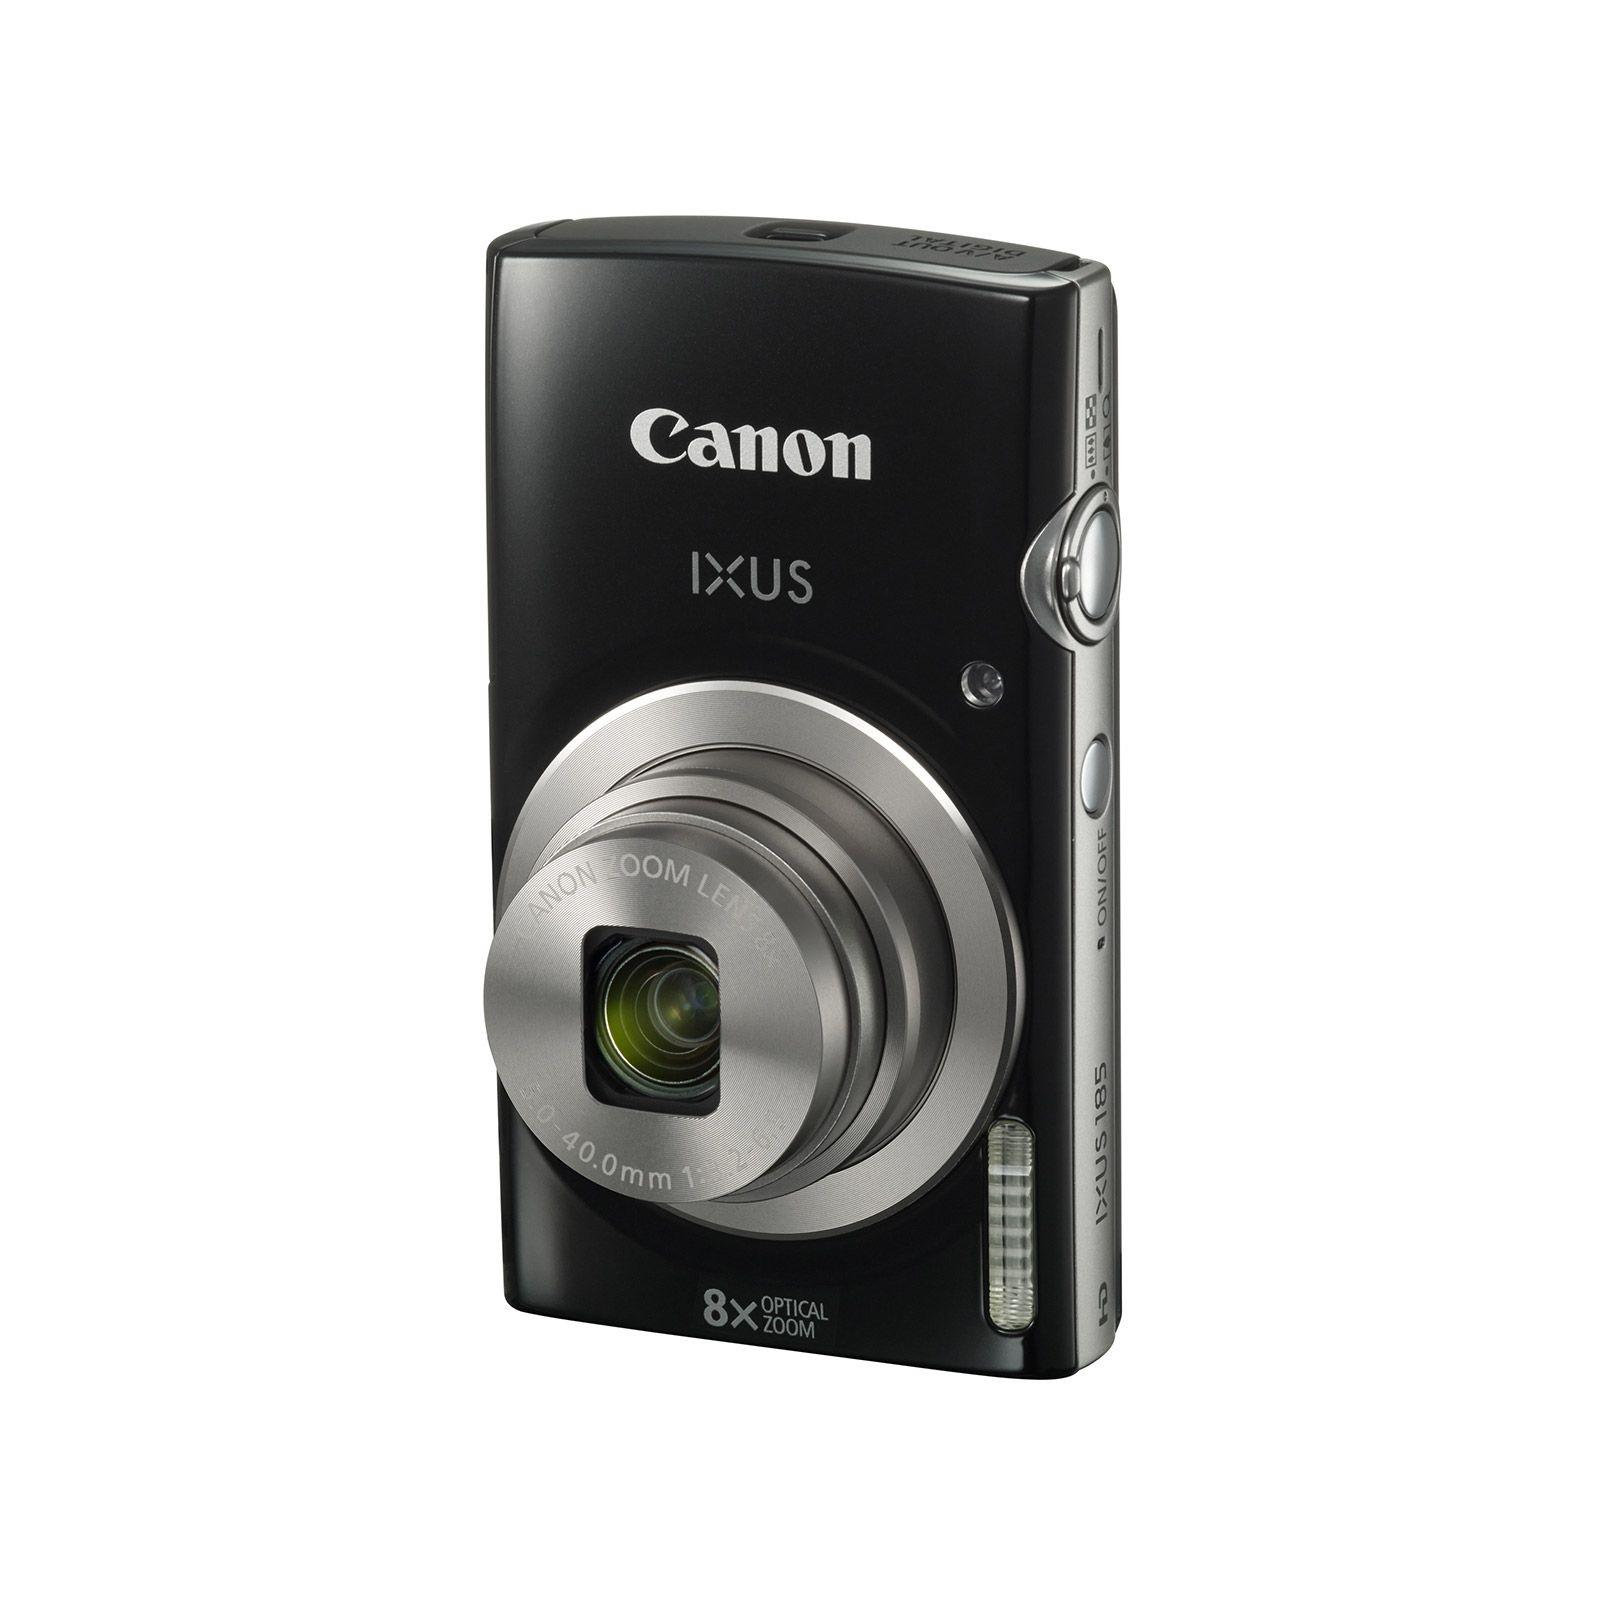 Canon Ixus 185 20.0 Megapixel Digital Camera 8x Optical Zoom By Fepl.